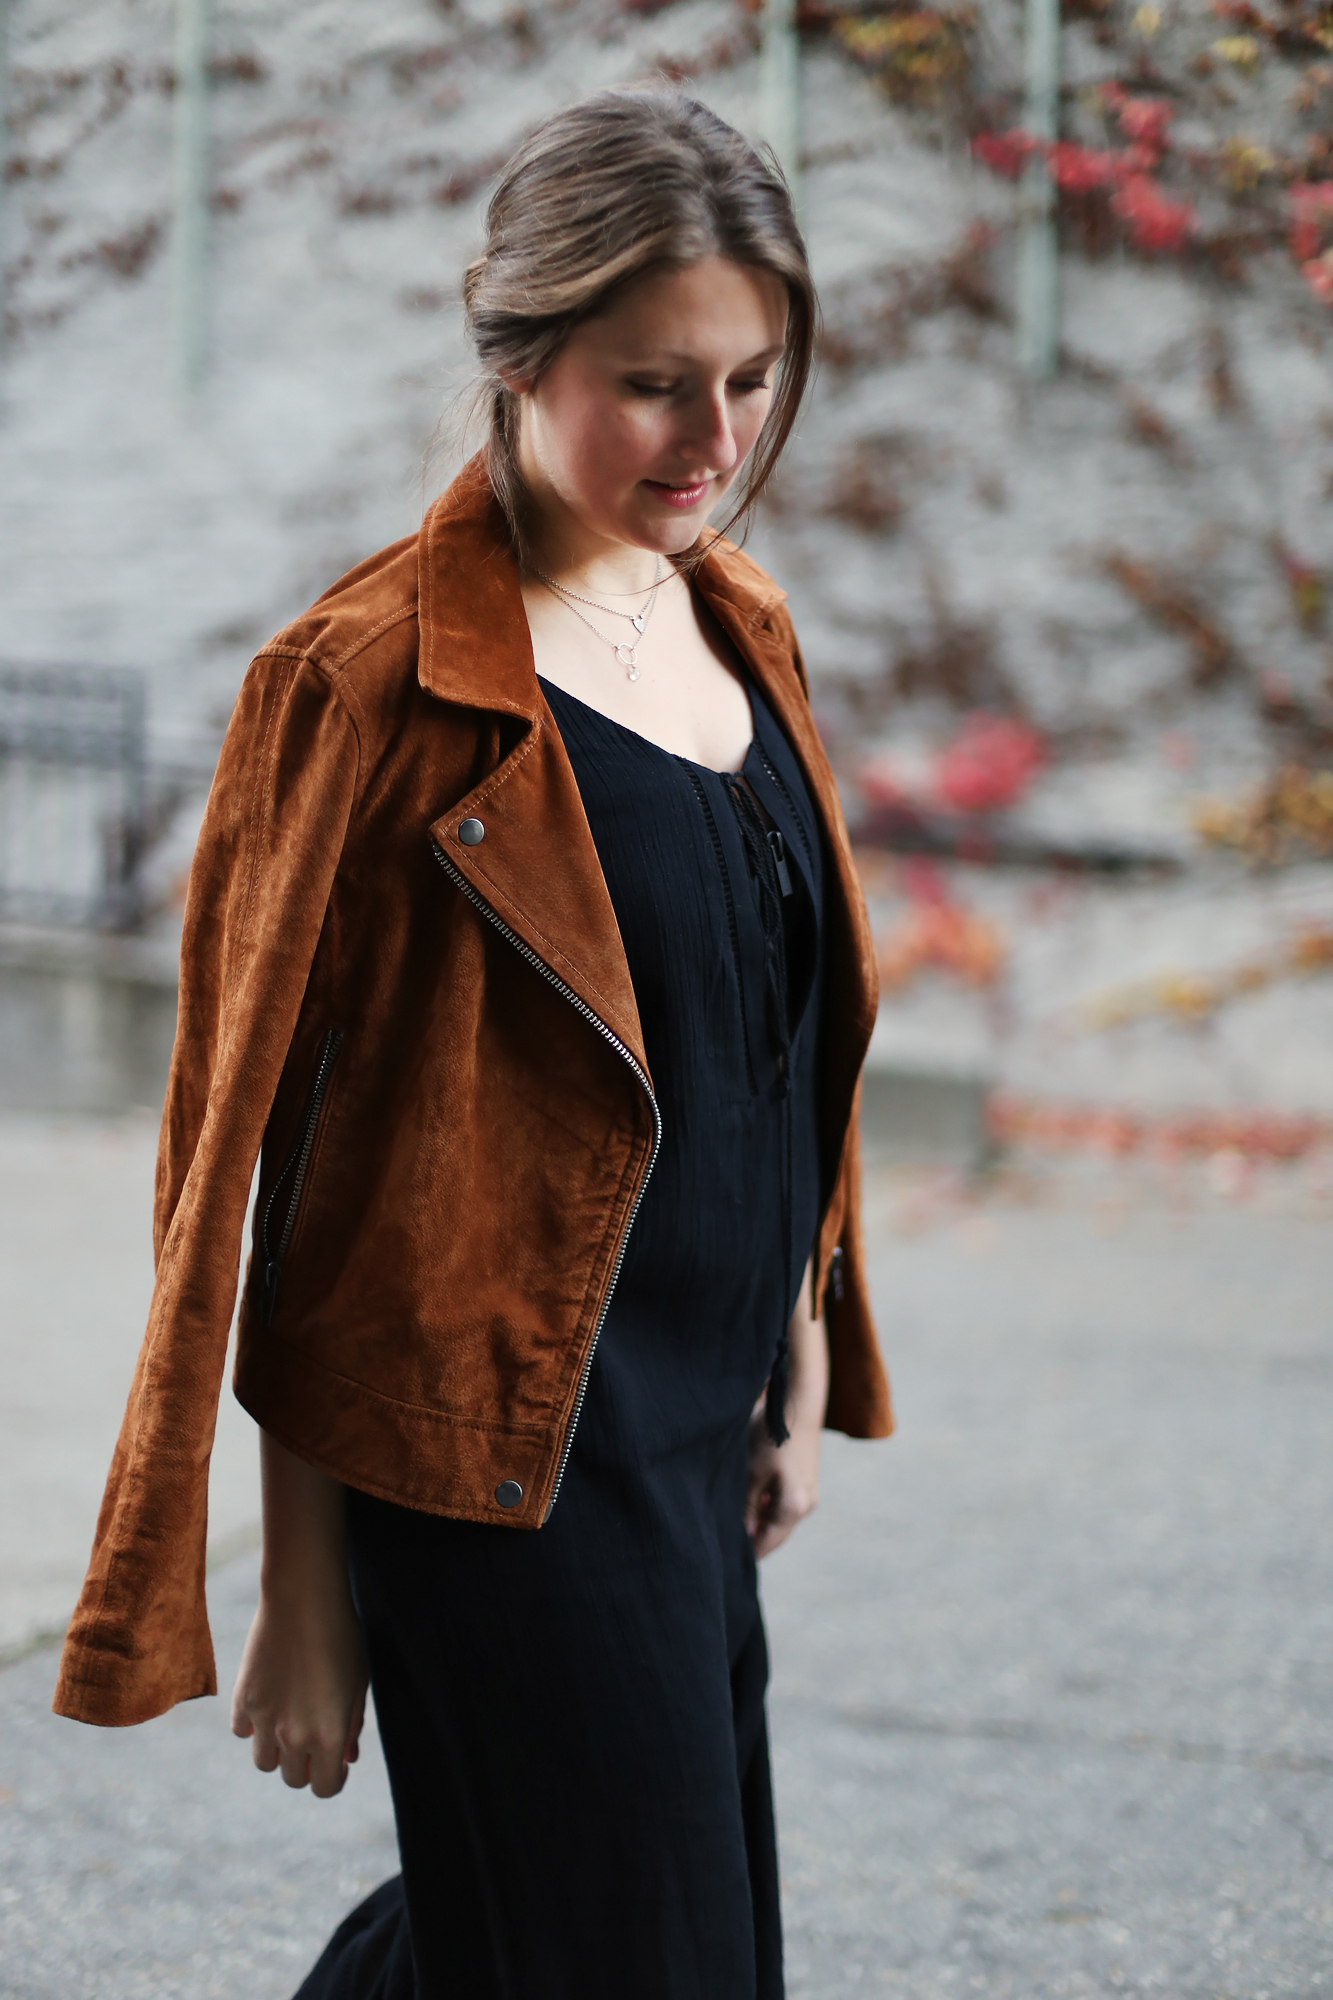 A chic fall look: Blank NYC suede moto jacket, Tobi maxi dress (currently 50% off!), Morecca clutch, and Sigerson morrison booties.